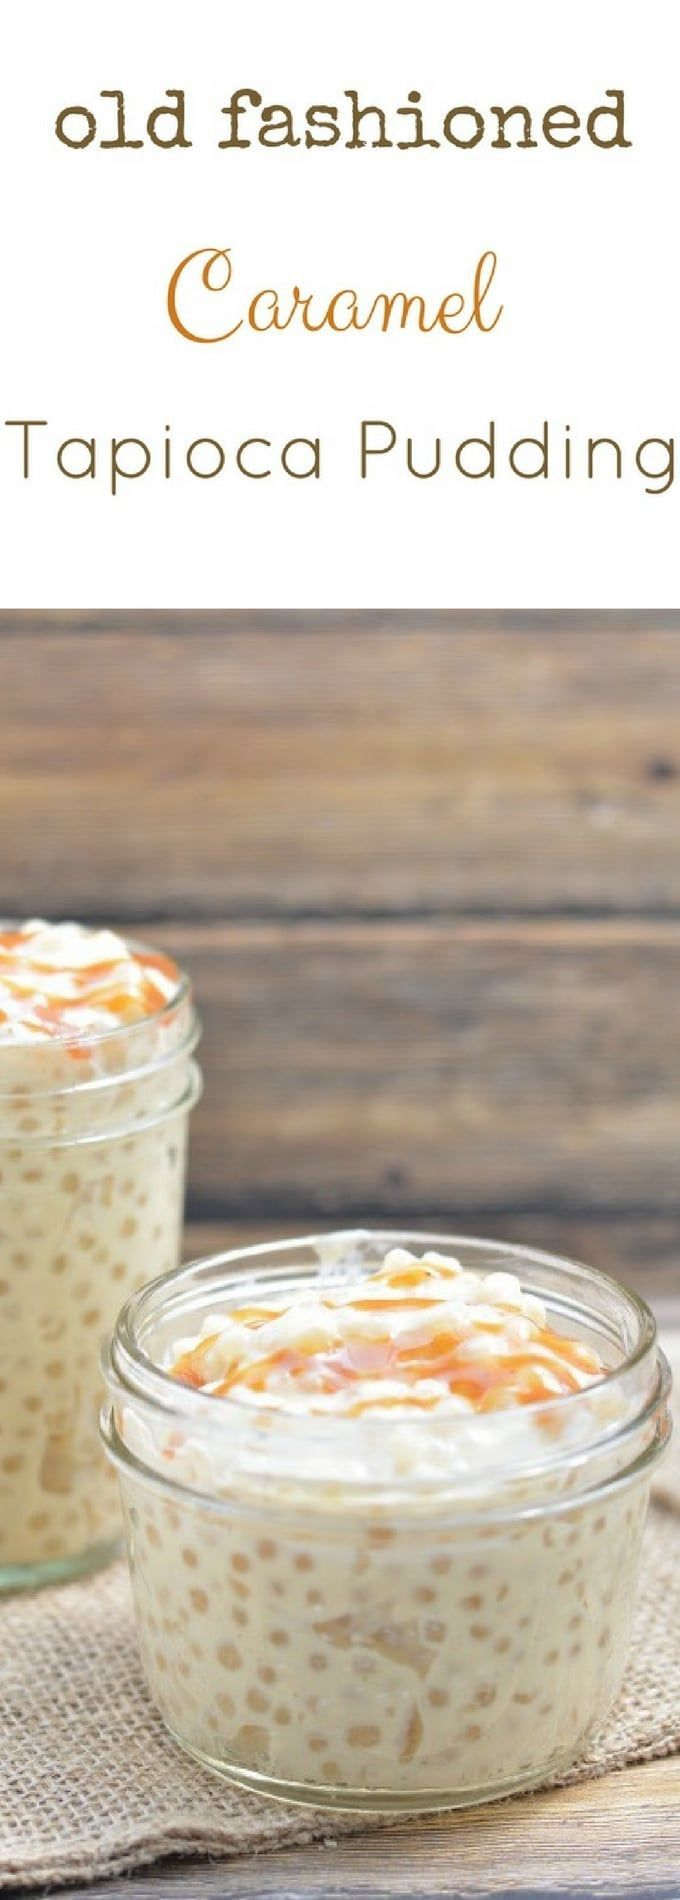 This old fashioned caramel tapioca pudding is a creamy delicious pudding that can be served cold or warm. Drizzle caramel on top for a special dessert. Recipe at http://www.fearlessdining.com